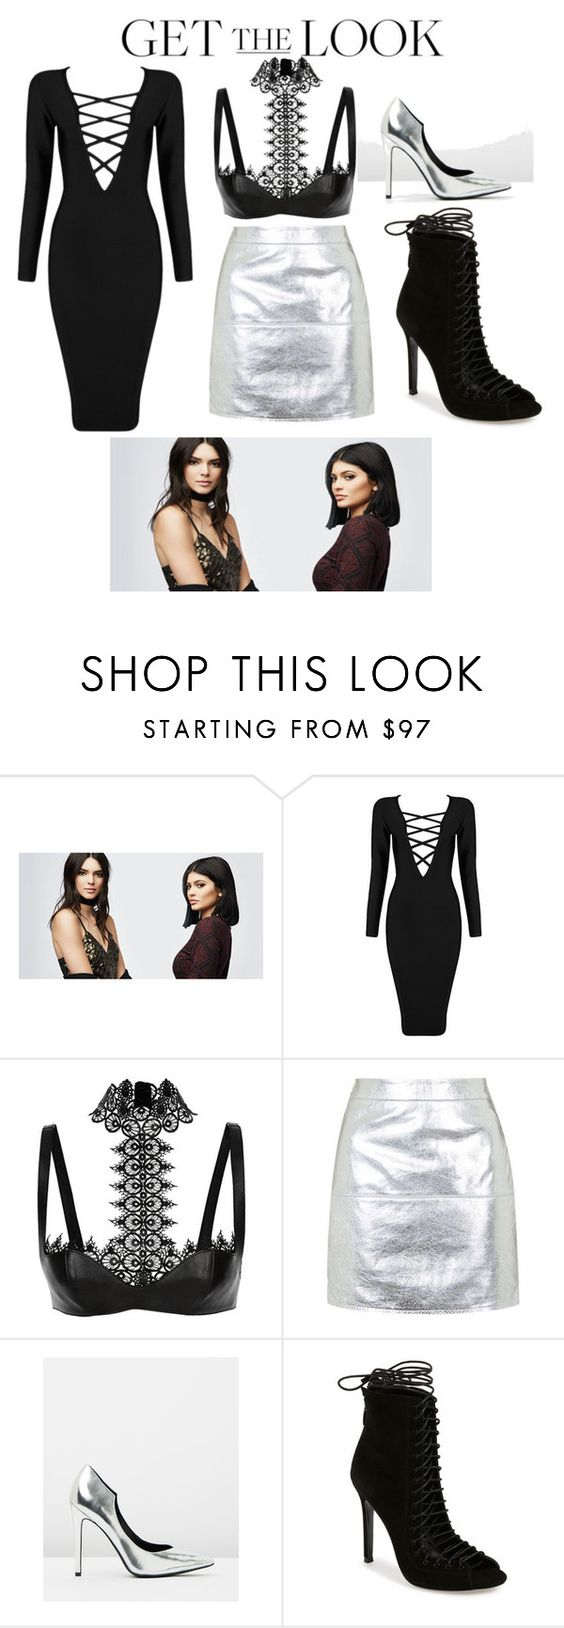 """""""jenner sisters inspired"""" by anzabiee ❤ liked on Polyvore featuring PacSun, Posh Girl, Alexander McQueen, Topshop, Kendall + Kylie, GetTheLook and celebritysiblings"""